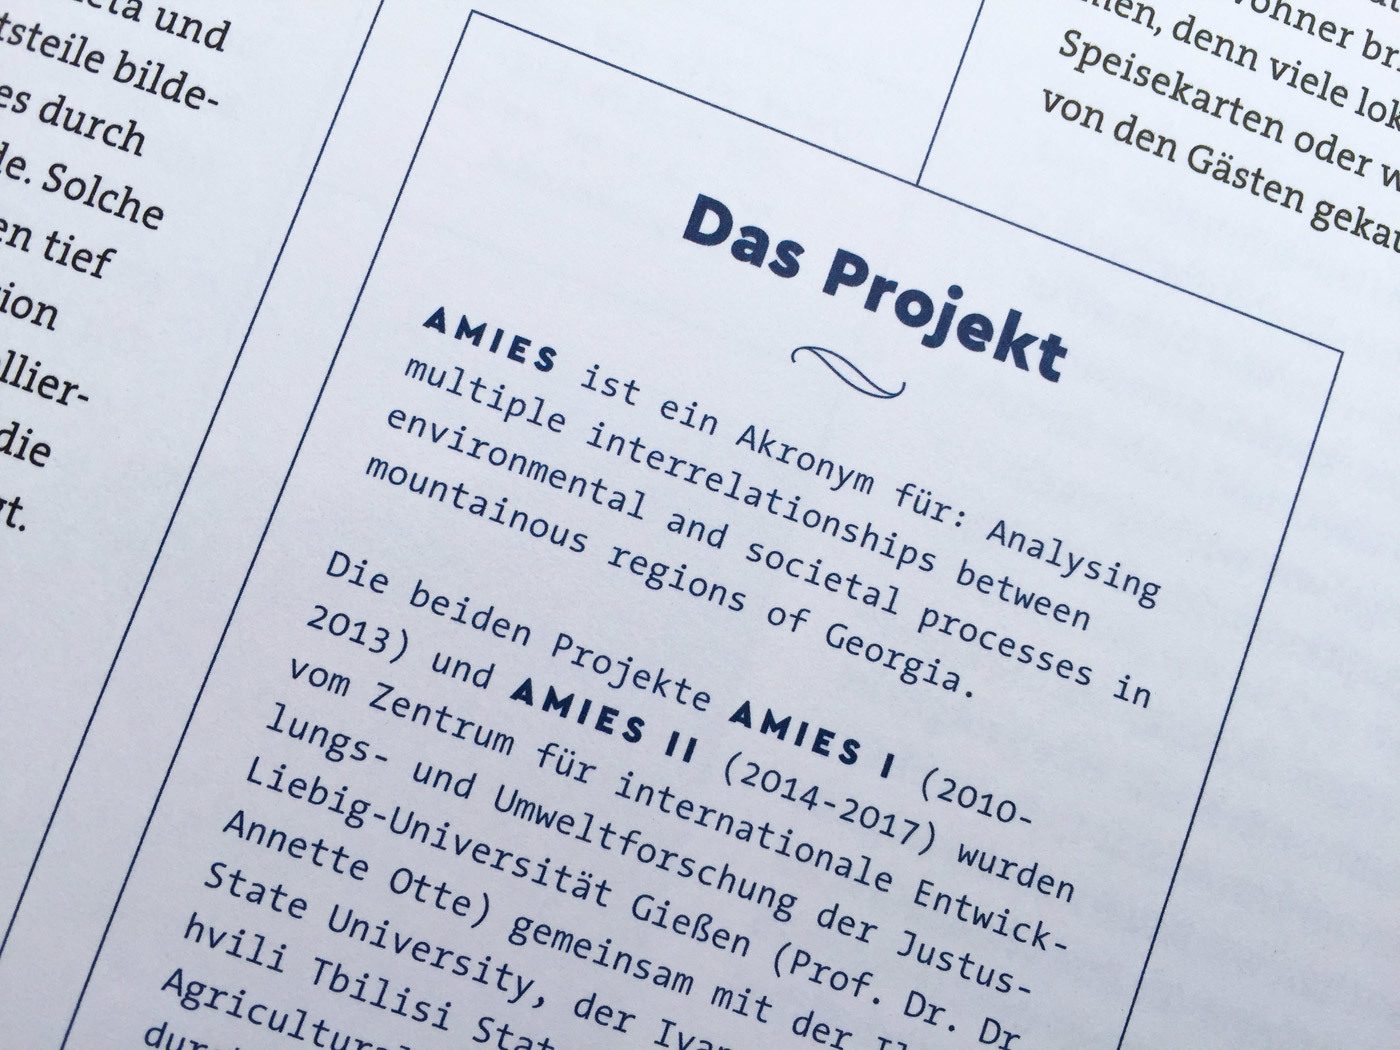 Fonts In Use Volkswagen Stiftung Magazin Corporate Publisher Territory 08 Cera Pro Thesis